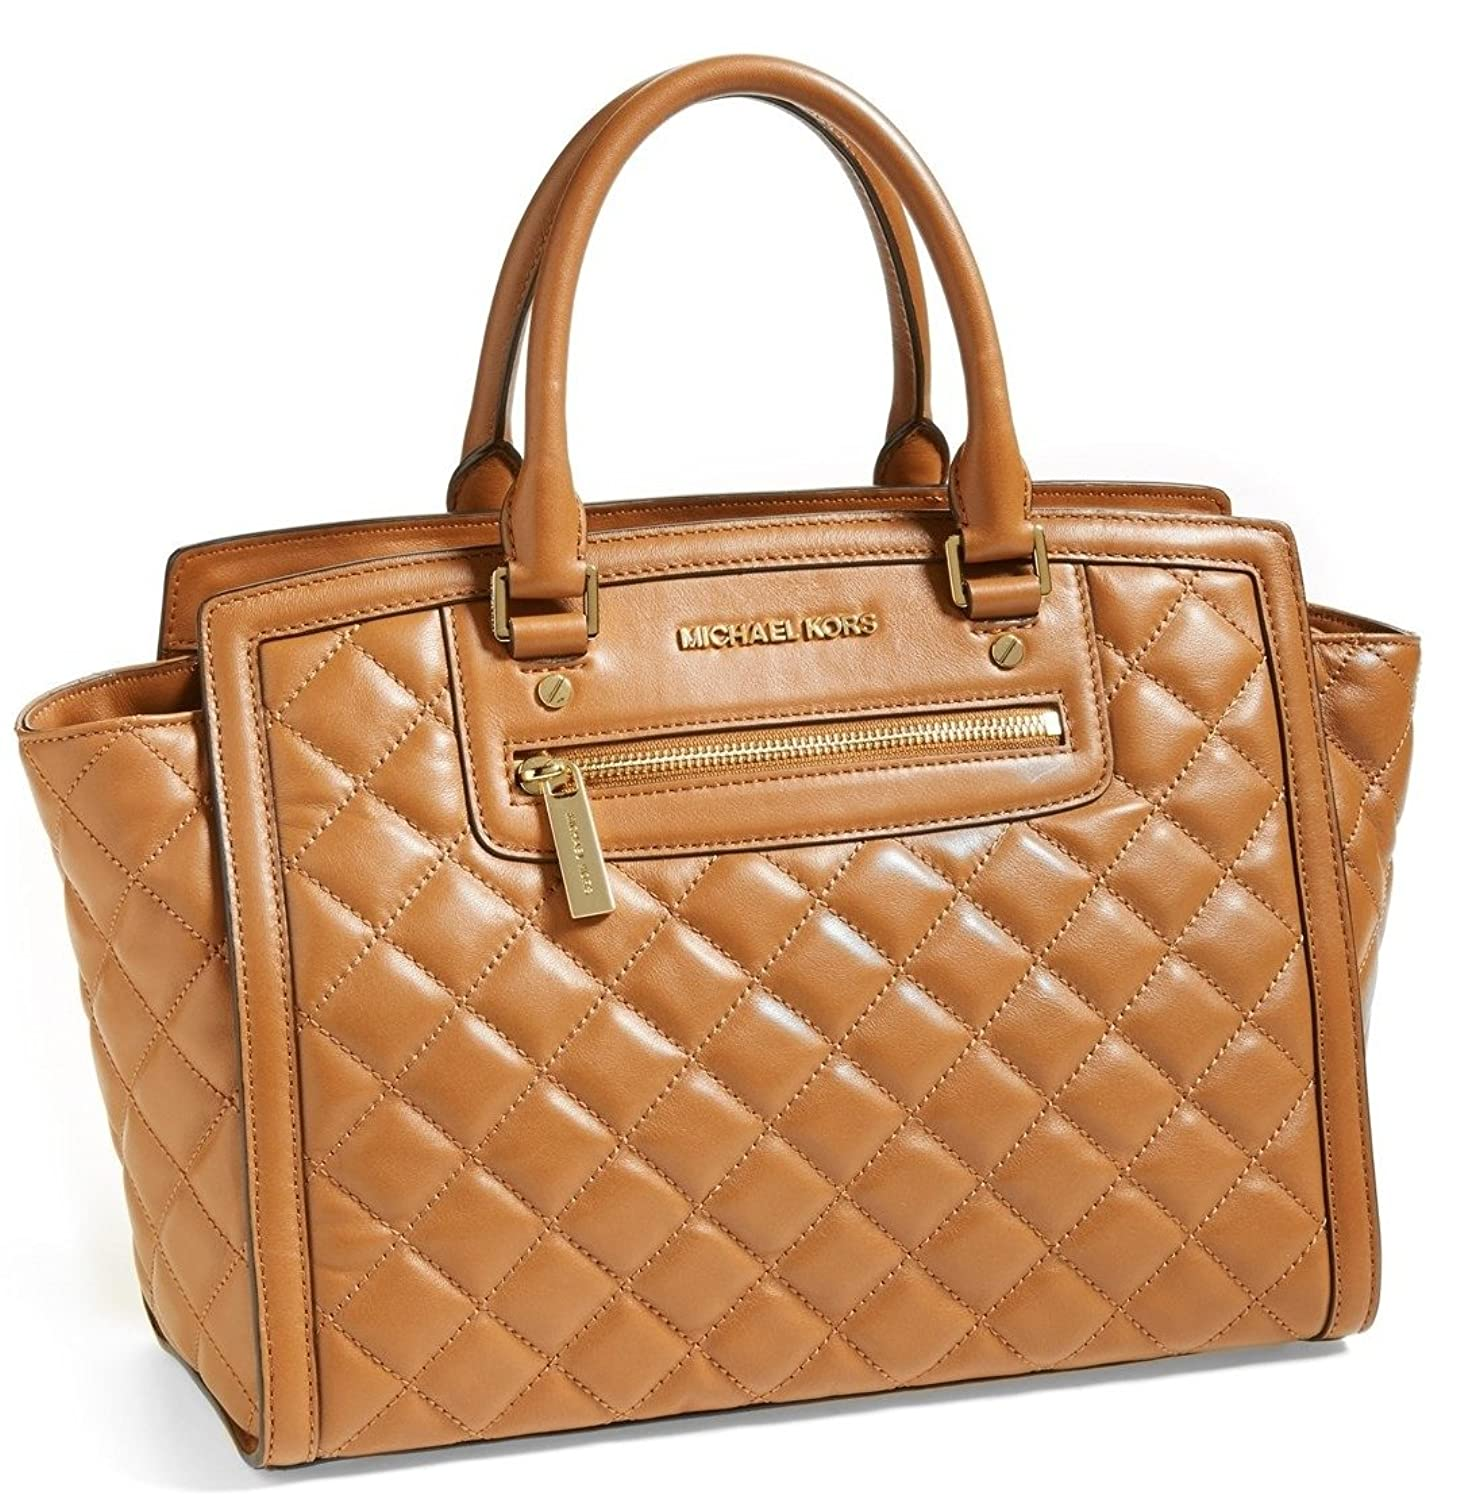 v camera beige purses quilted messenger stitch handbags for leather tassel id cc bags crossbody sale vintage with bag w chanel at fashion quilt master